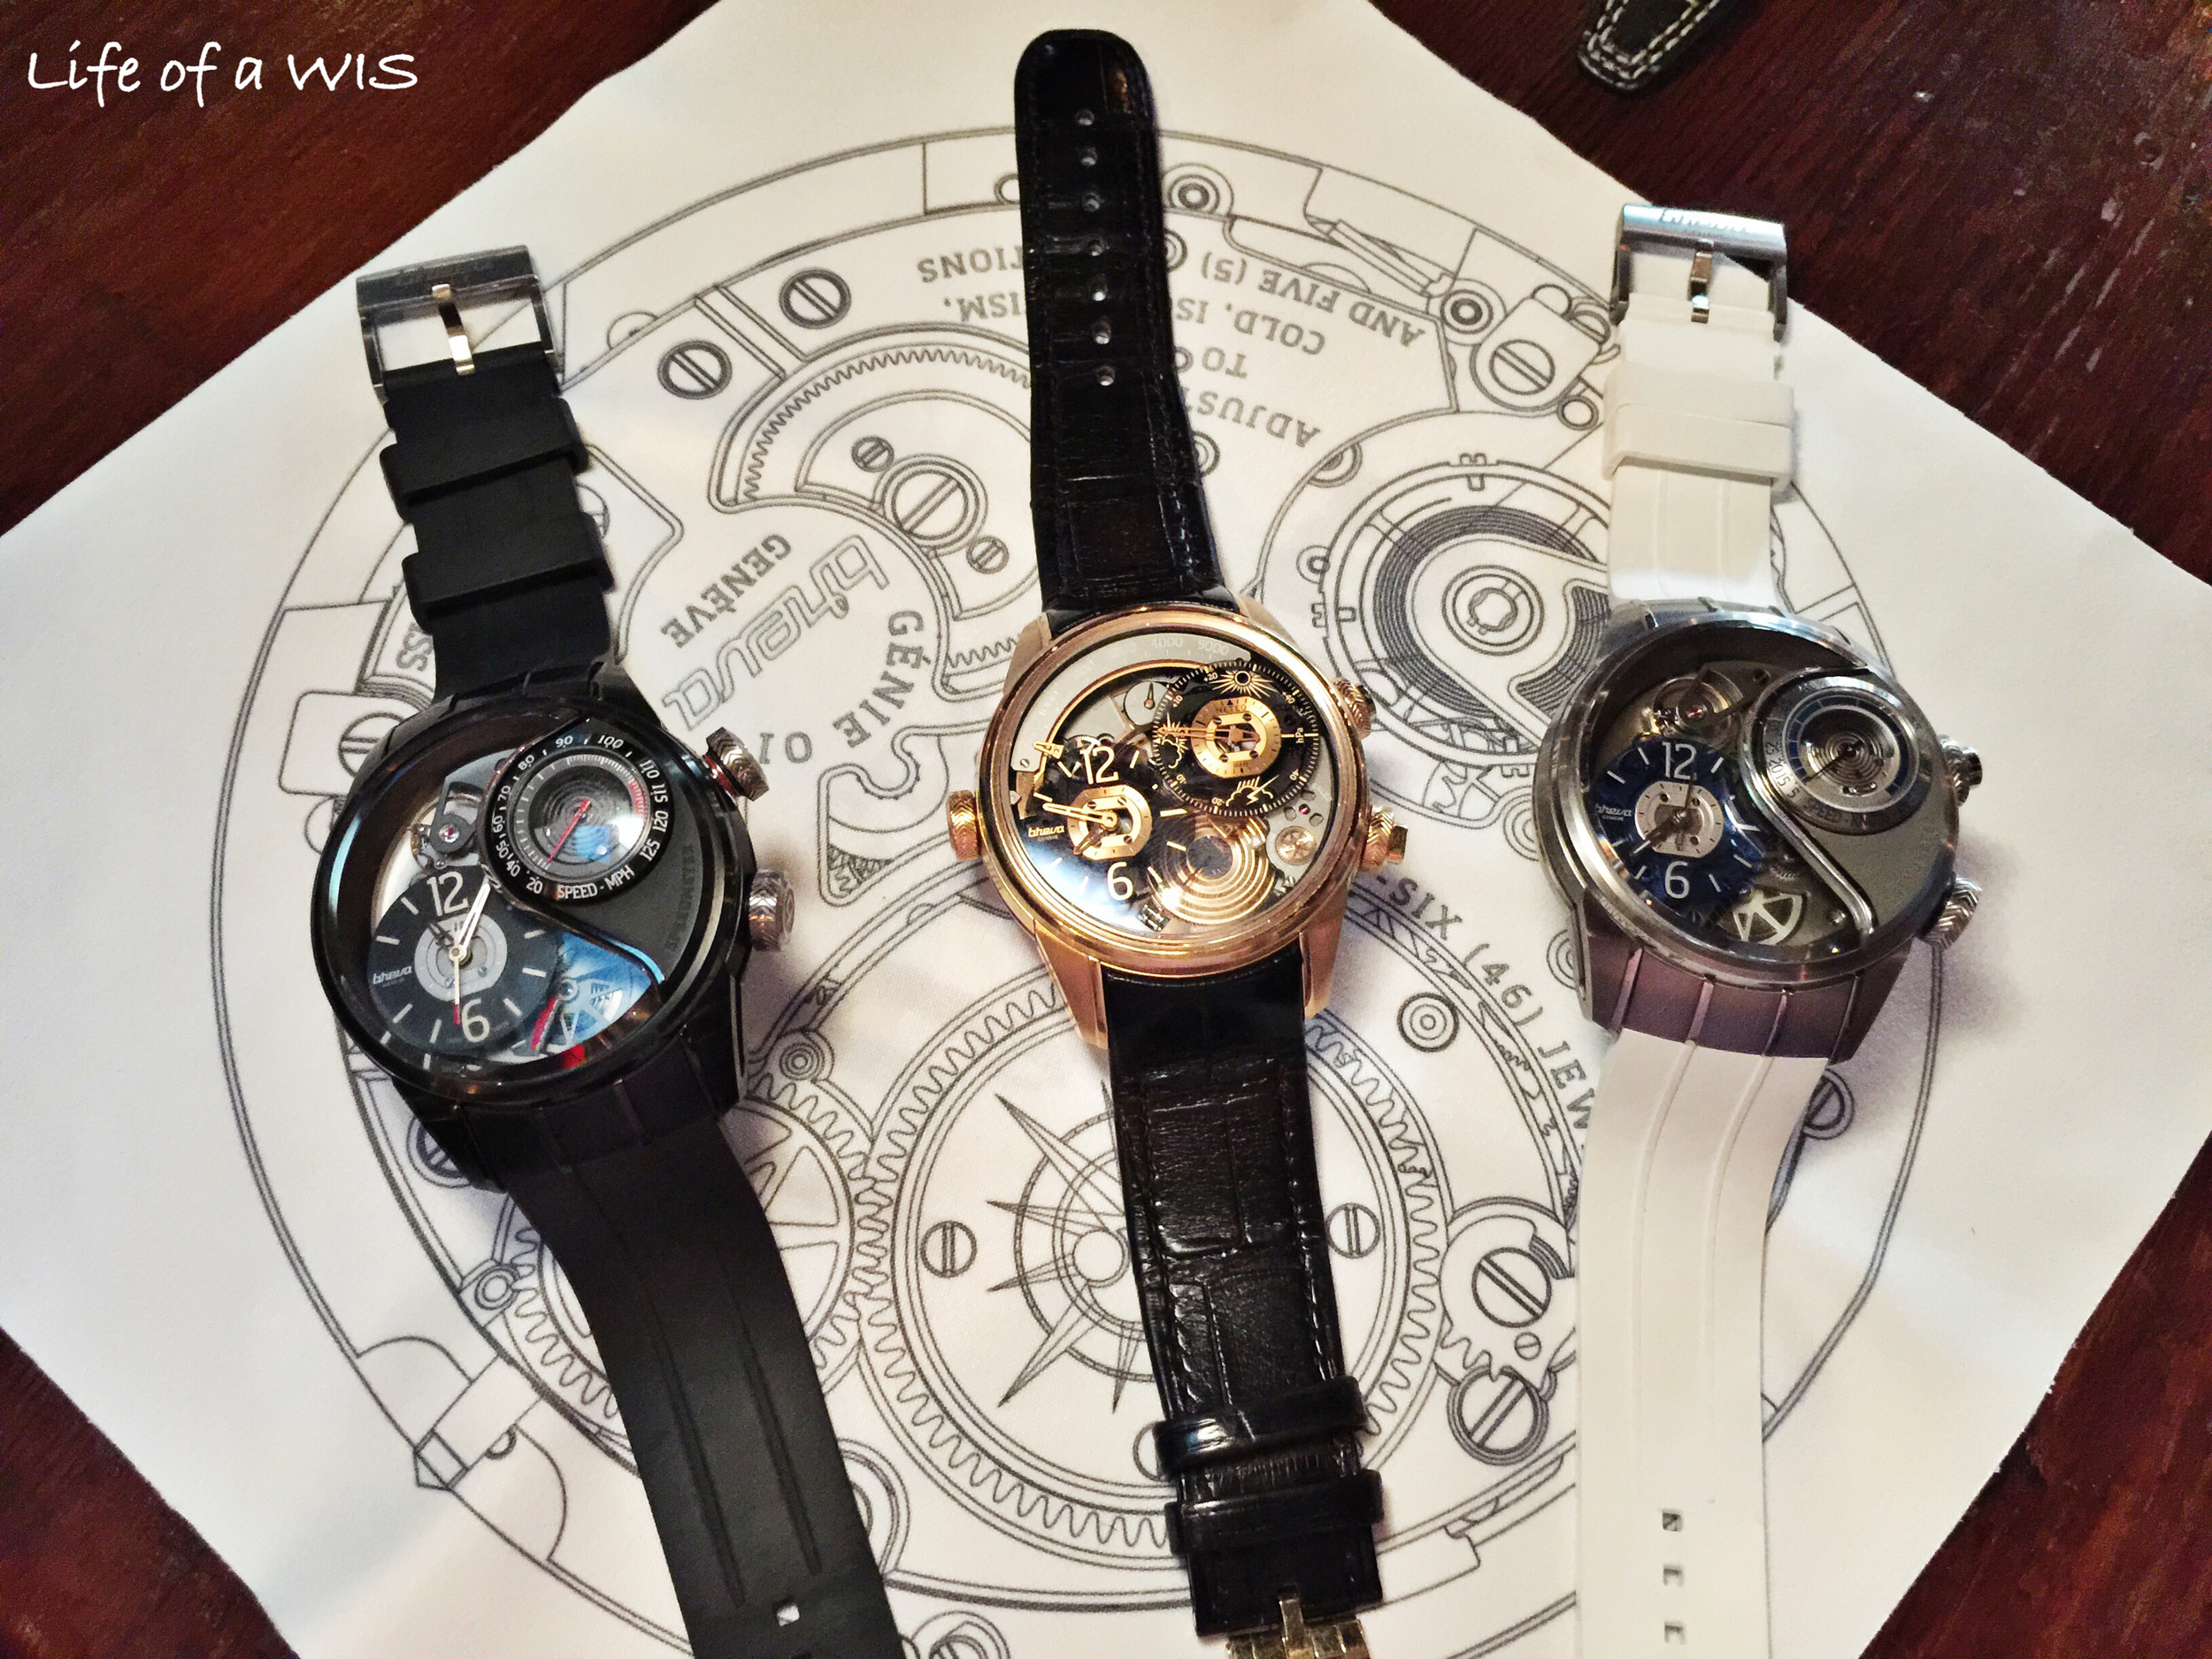 Three unique watches that do a lot more than just tell time.